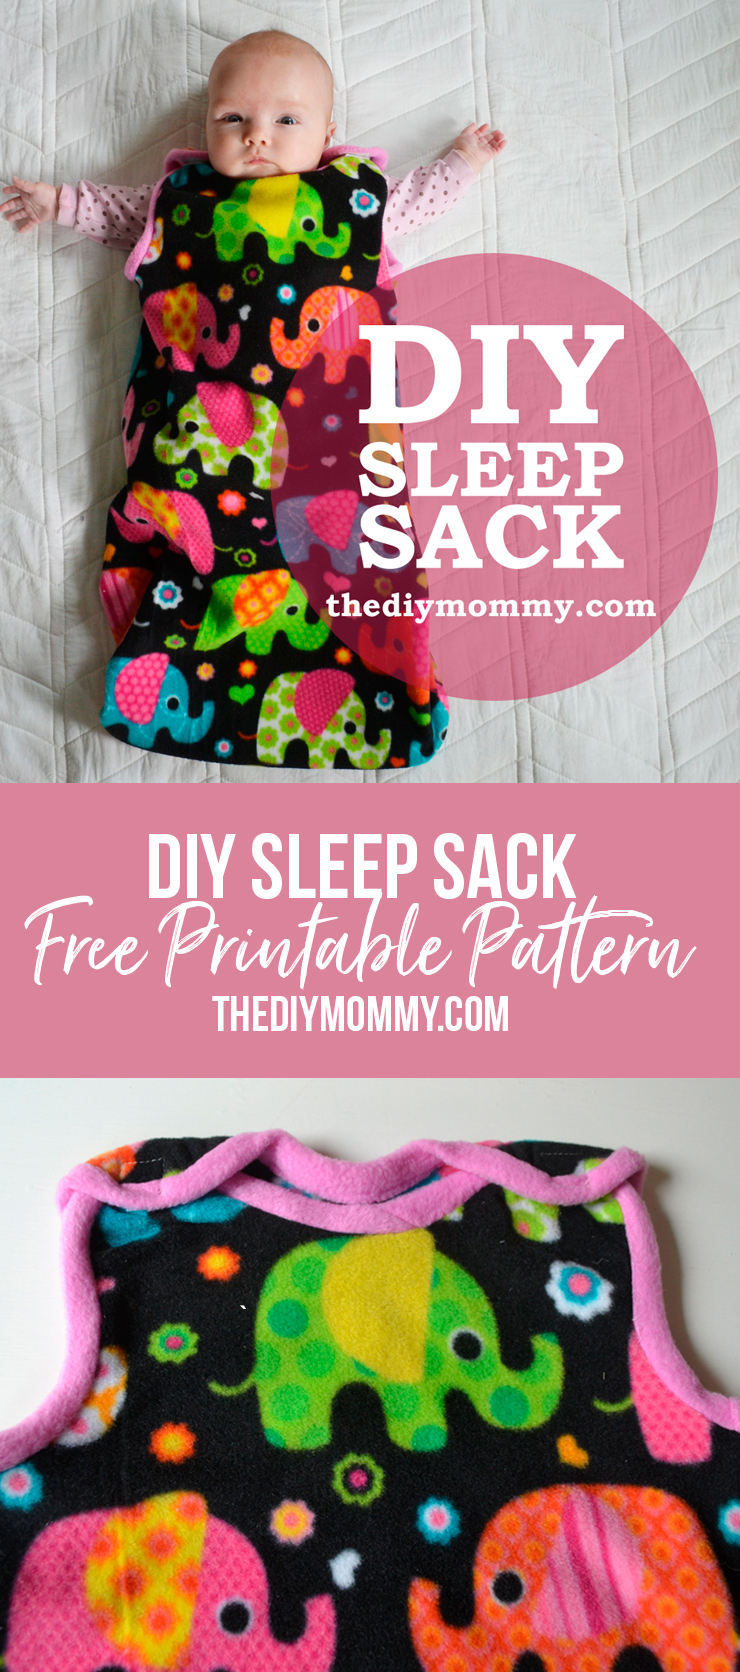 Simple and cute baby sleep sack tutorial with a free pattern and printable instructions